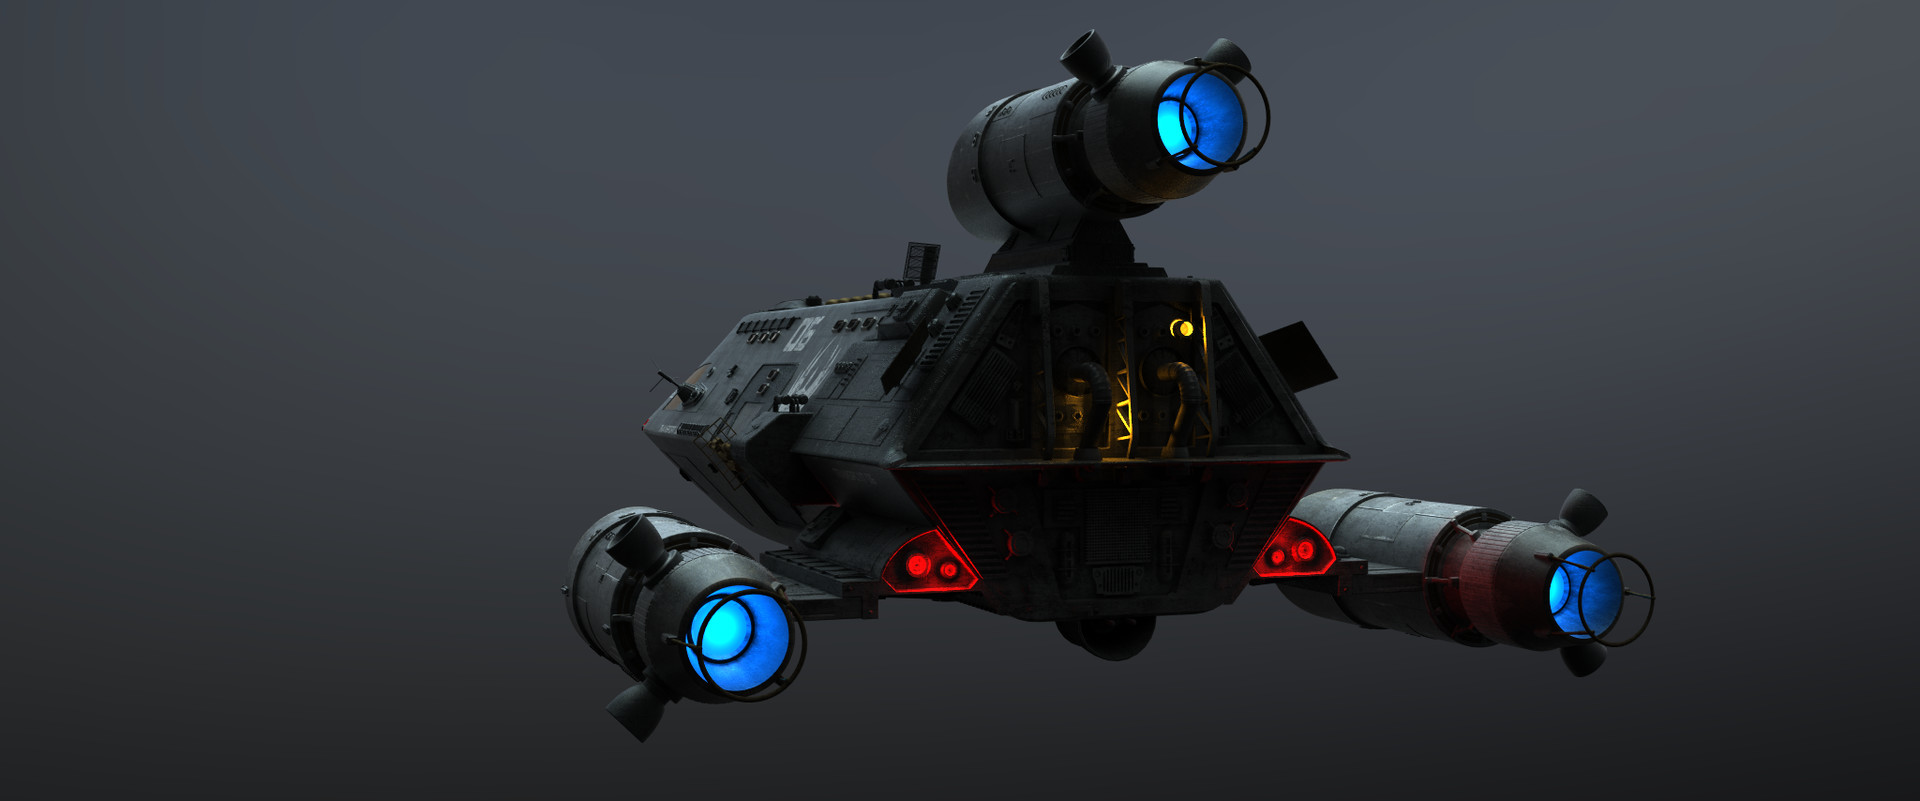 Generic Transport (Originally Modled by Gabe Koener, uprezzed and Militarized by Me)